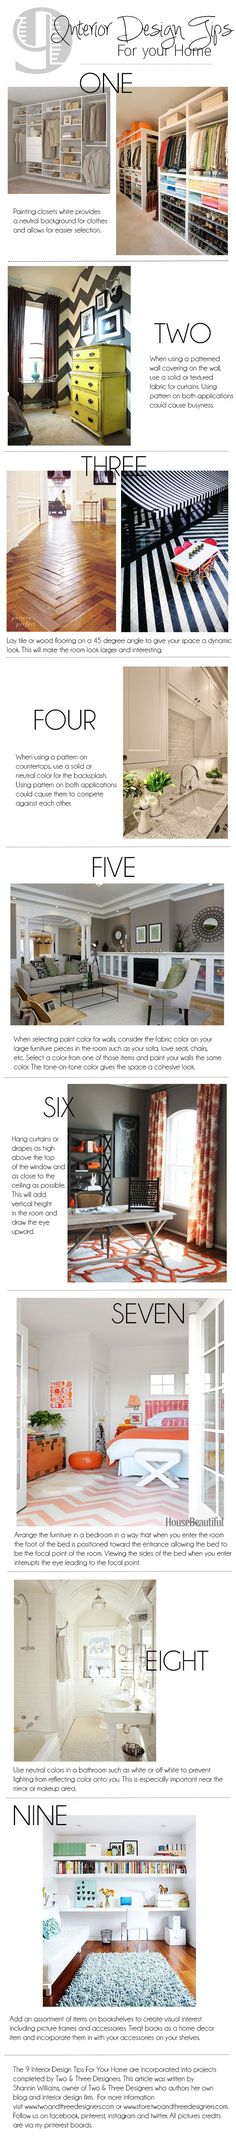 Some good tips for Home Staging, as well: 9 Interior Design Tips for your Home from Two & Three Designers.